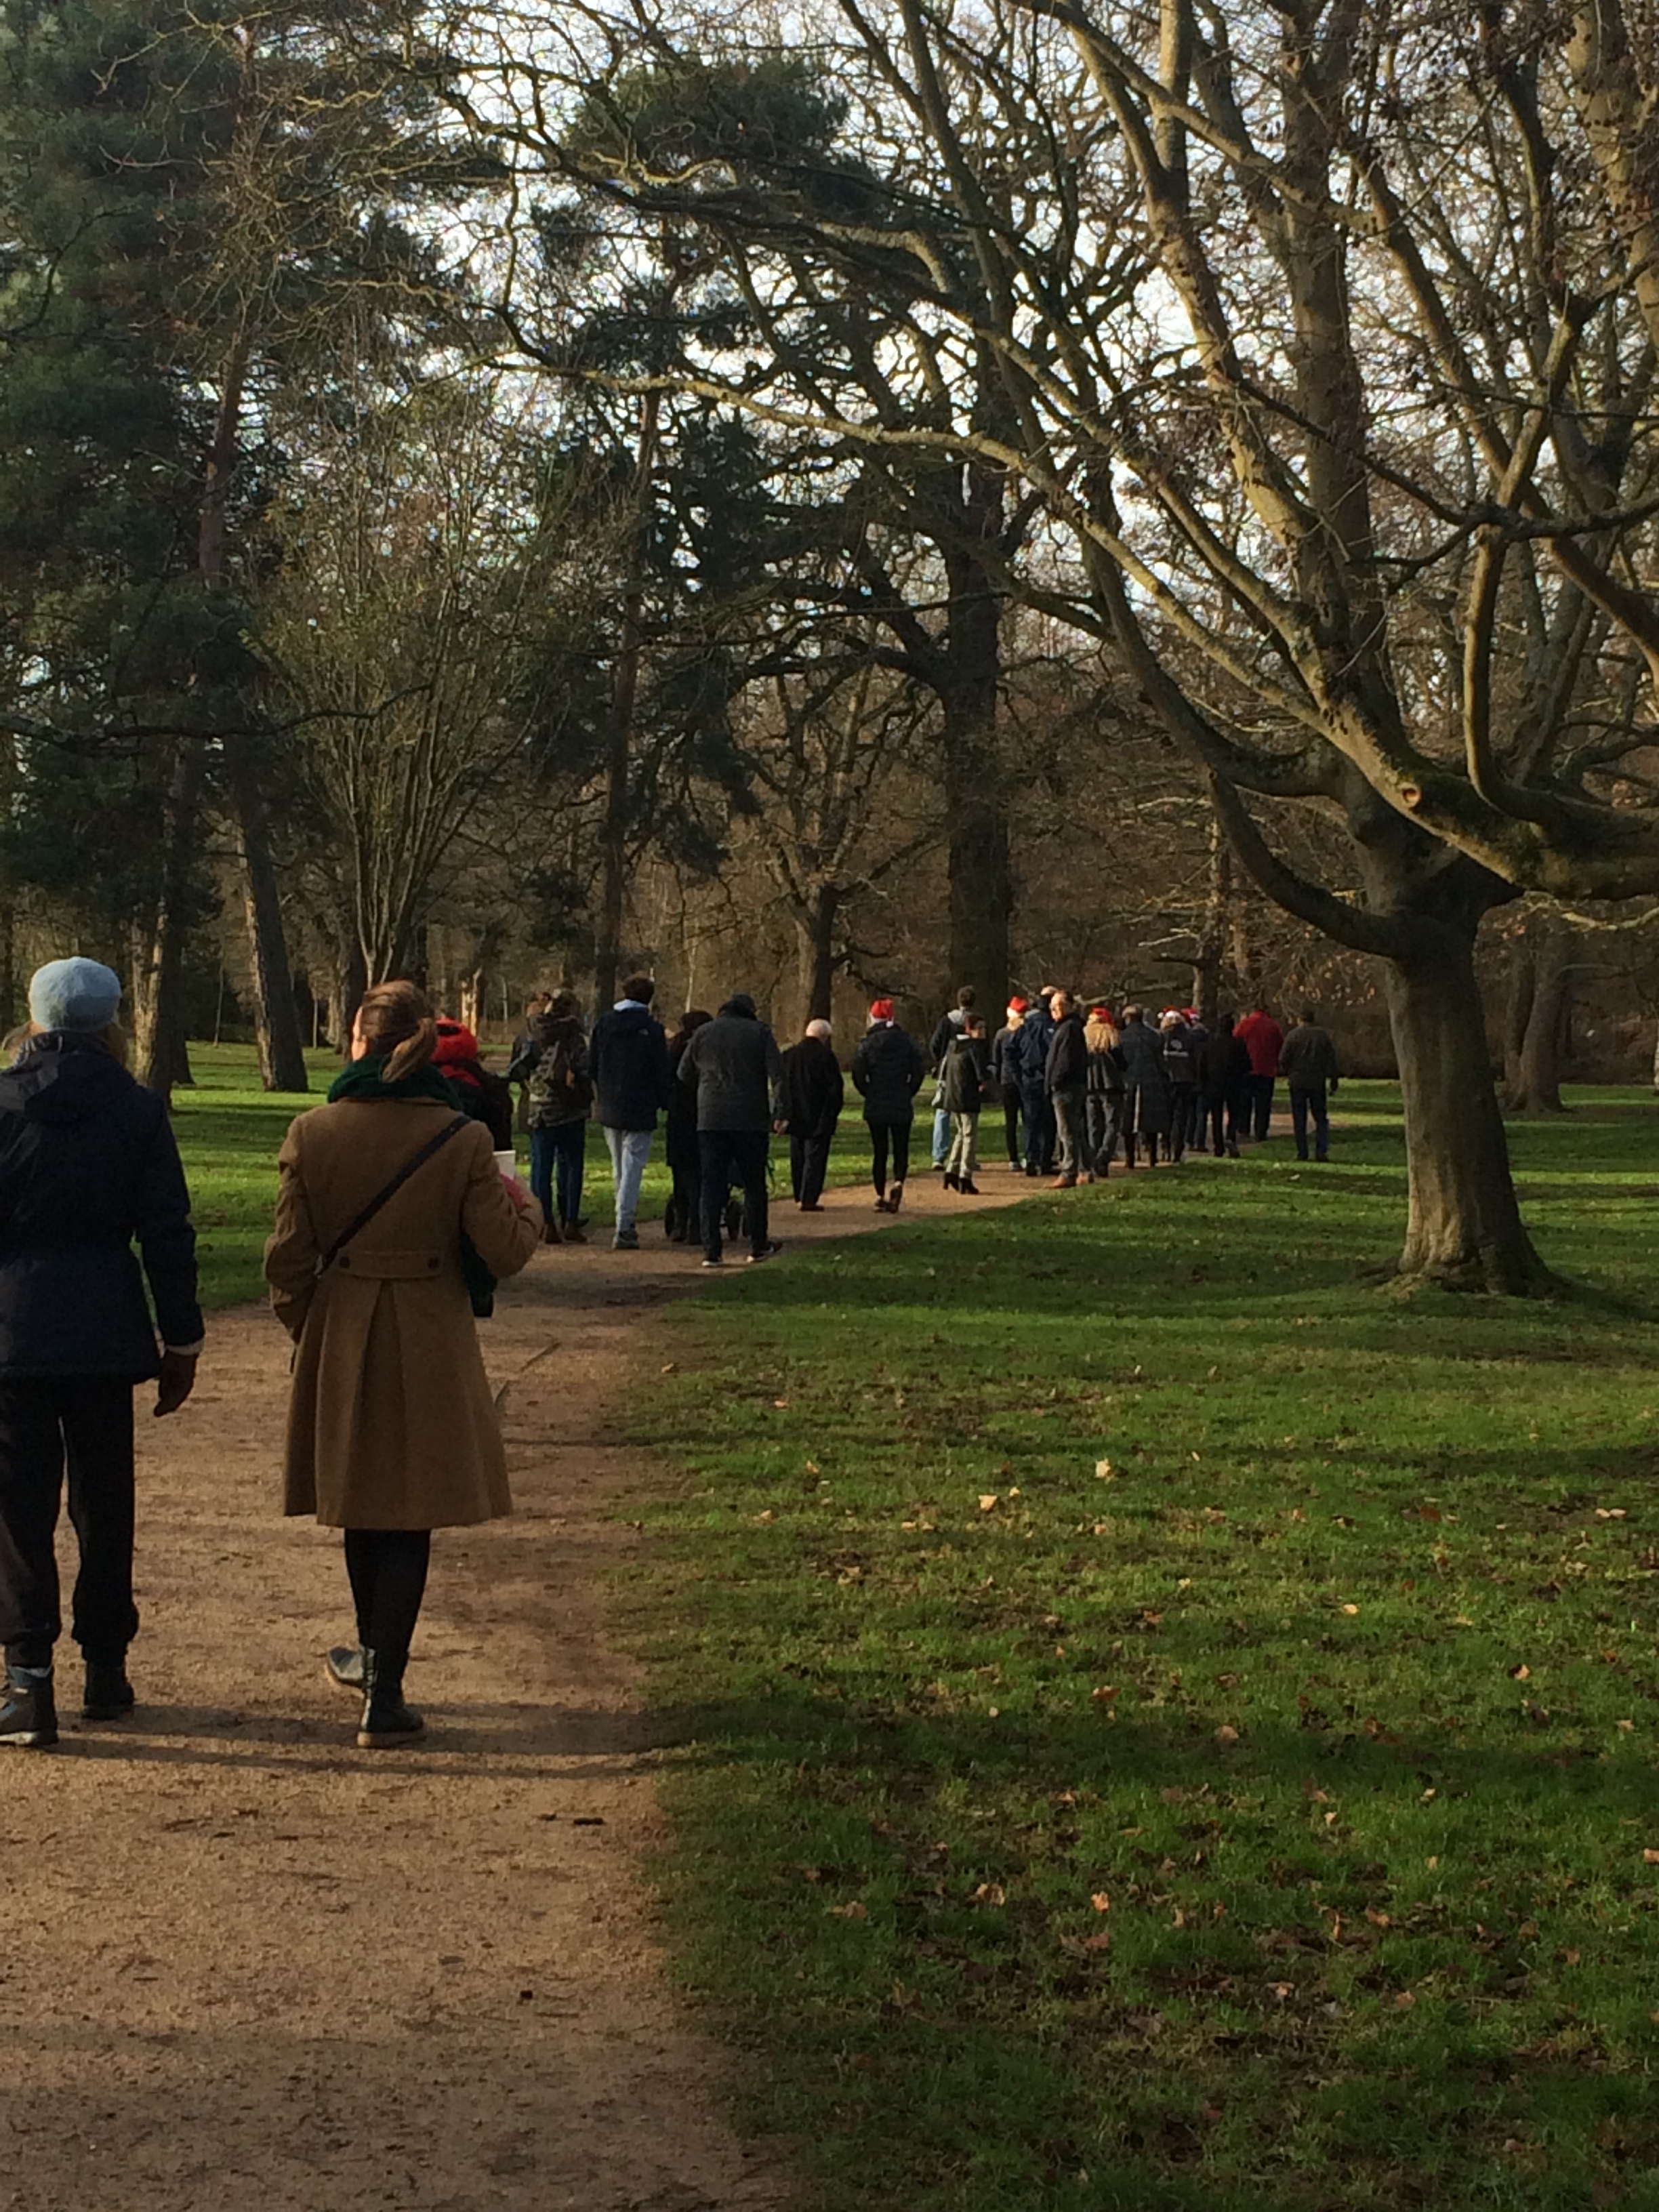 Bushey Park Save the hero's walk 22-12-18.jpeg